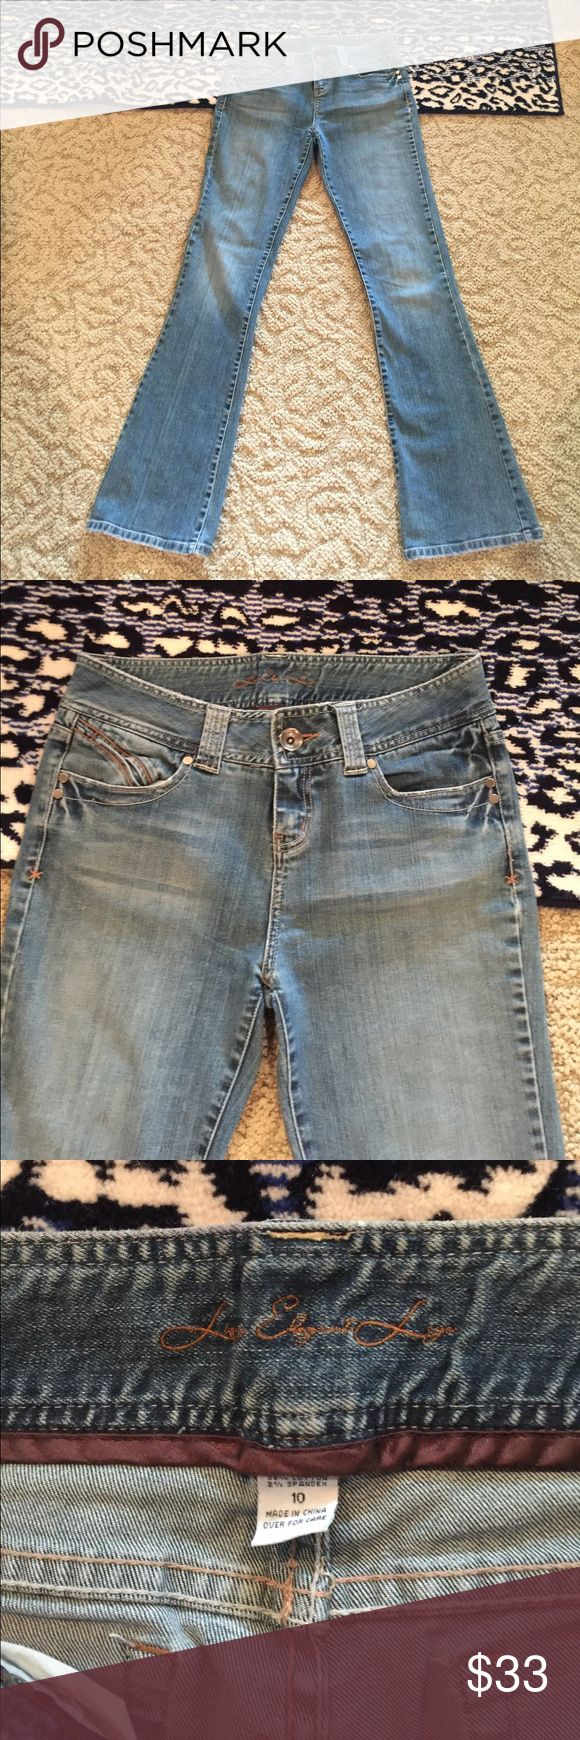 LEL BELL FLARE JEANS SIZE TALL 10 WIDE WAISTBAND LONG ELEGANT LEGS JEANS WITH SPANDEX TALL 10 WIDE WAISTBAND FLARE LEG VINTAGE DISTRESSED COLOR WITH BOTTOM OF LEG RAGGED 34 inch inseam Long Elegant Legs Jeans